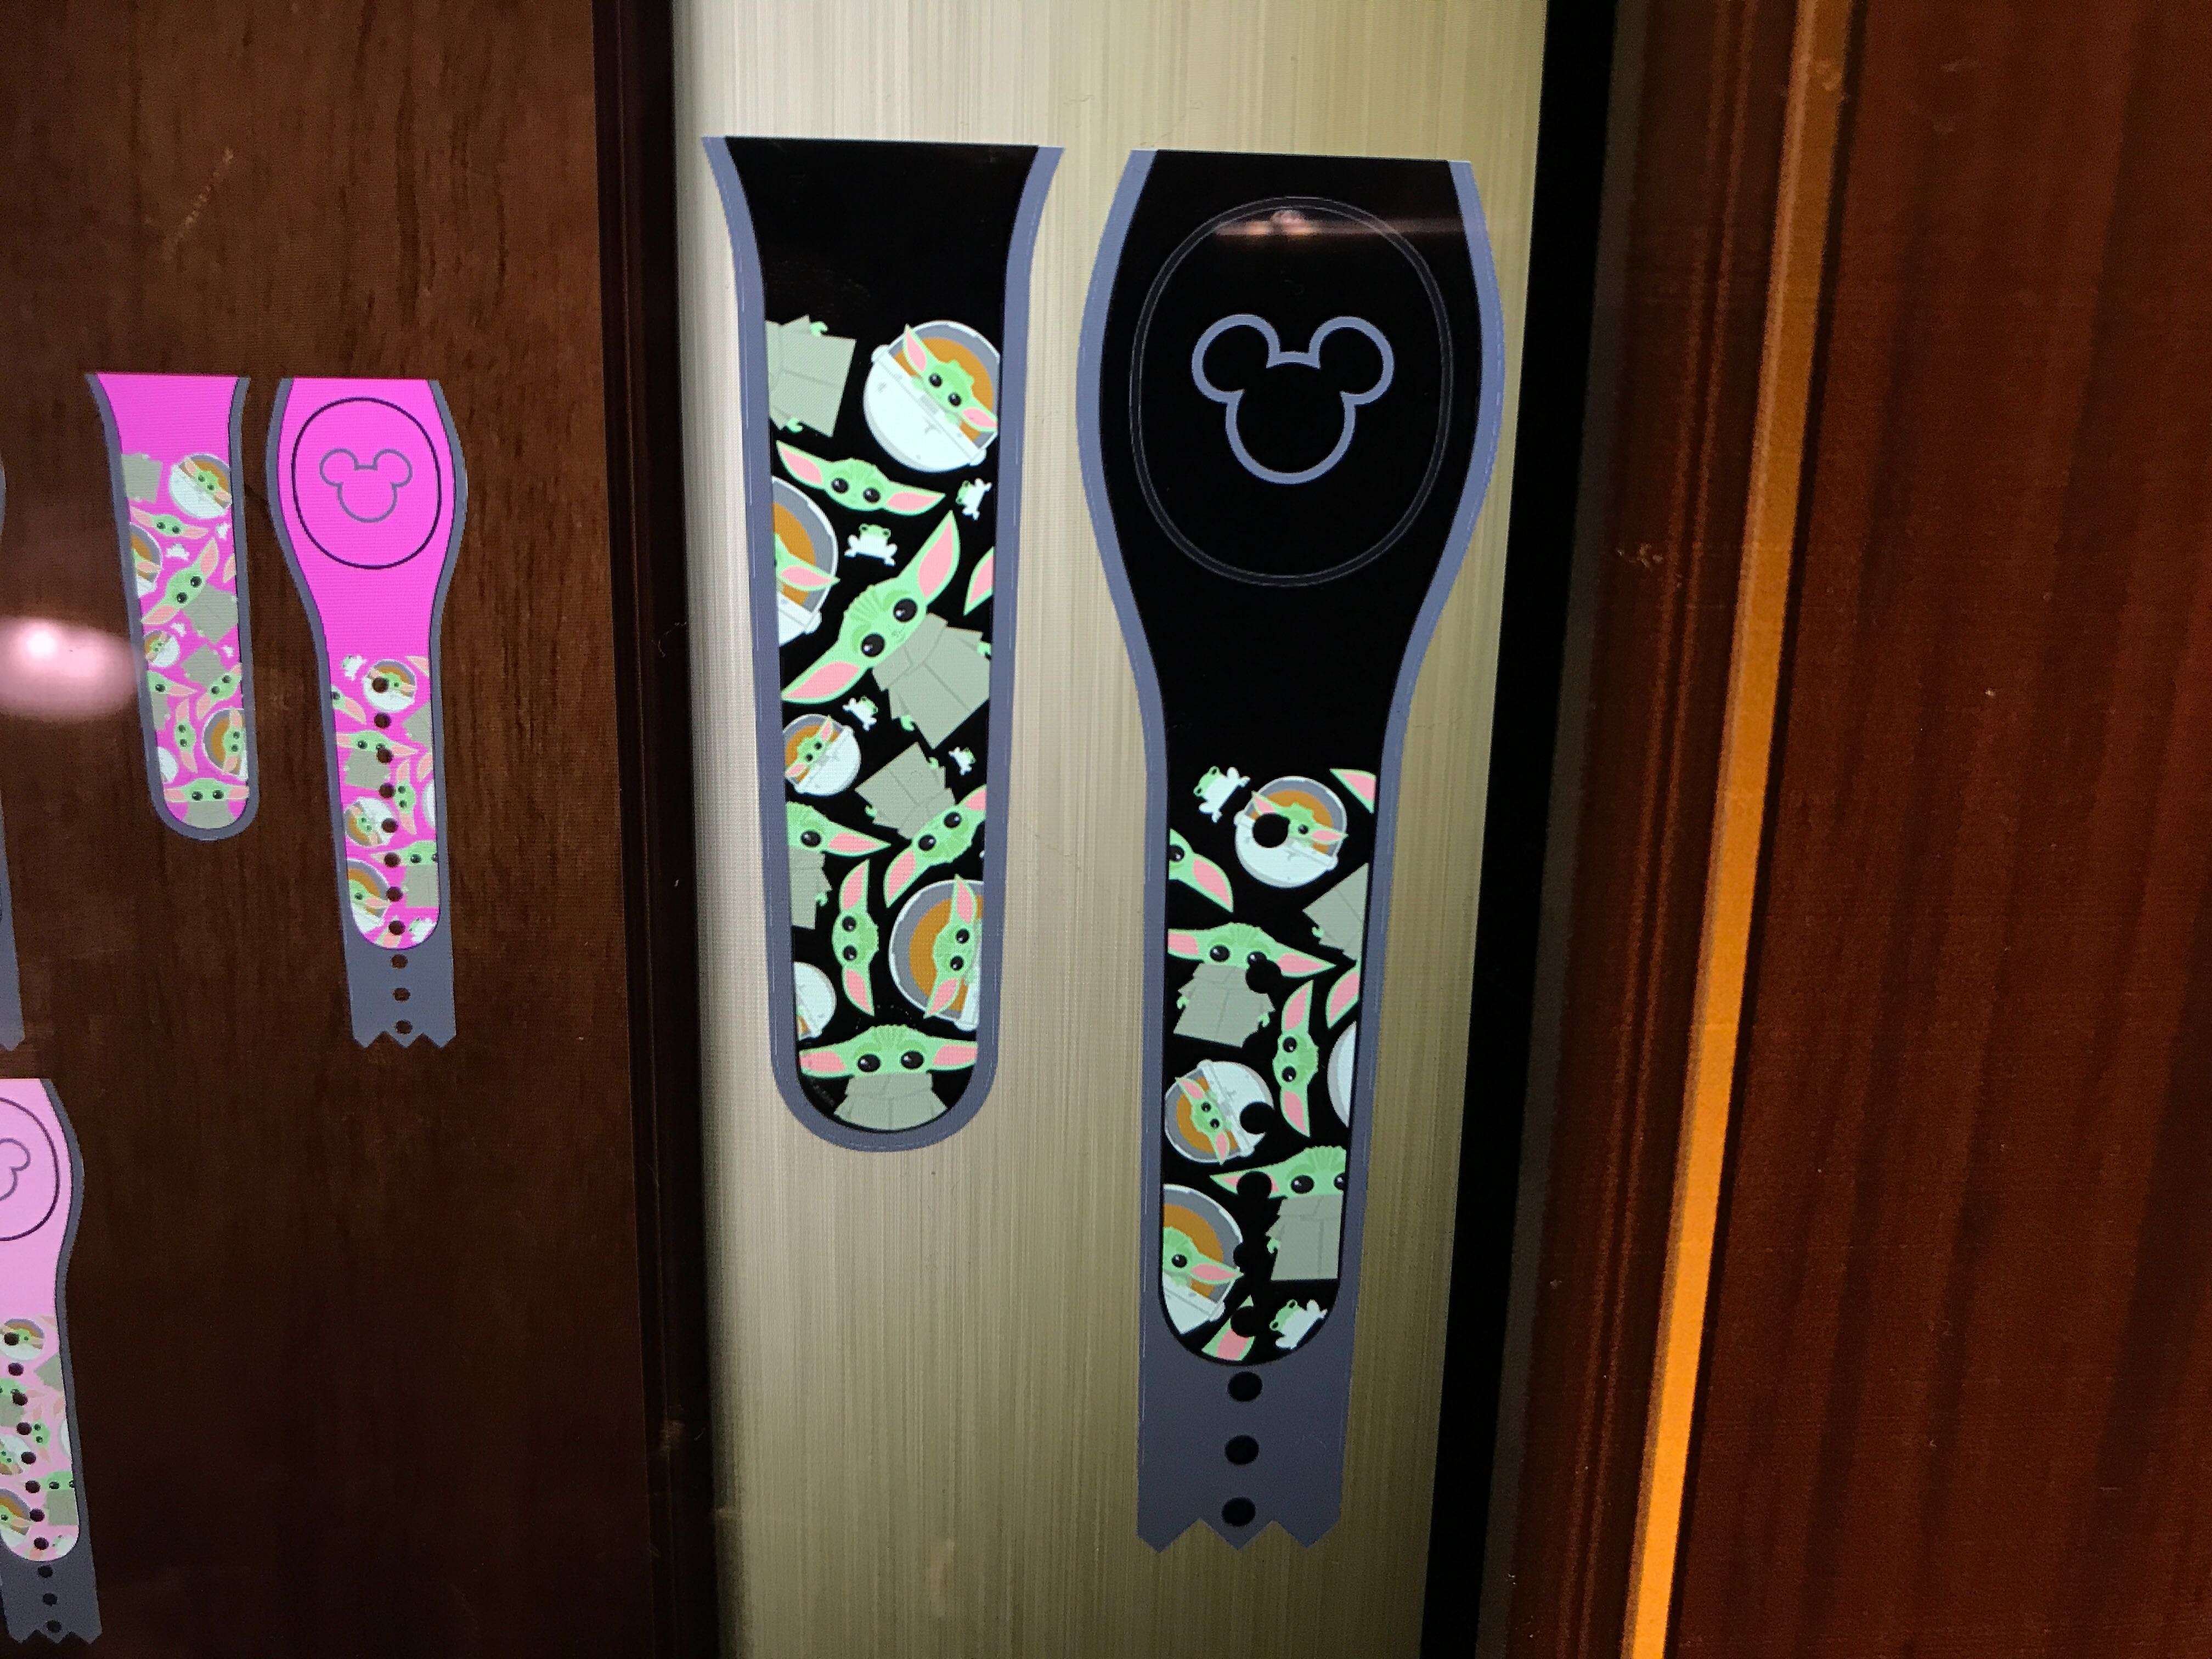 The Child MagicBand - $24.99